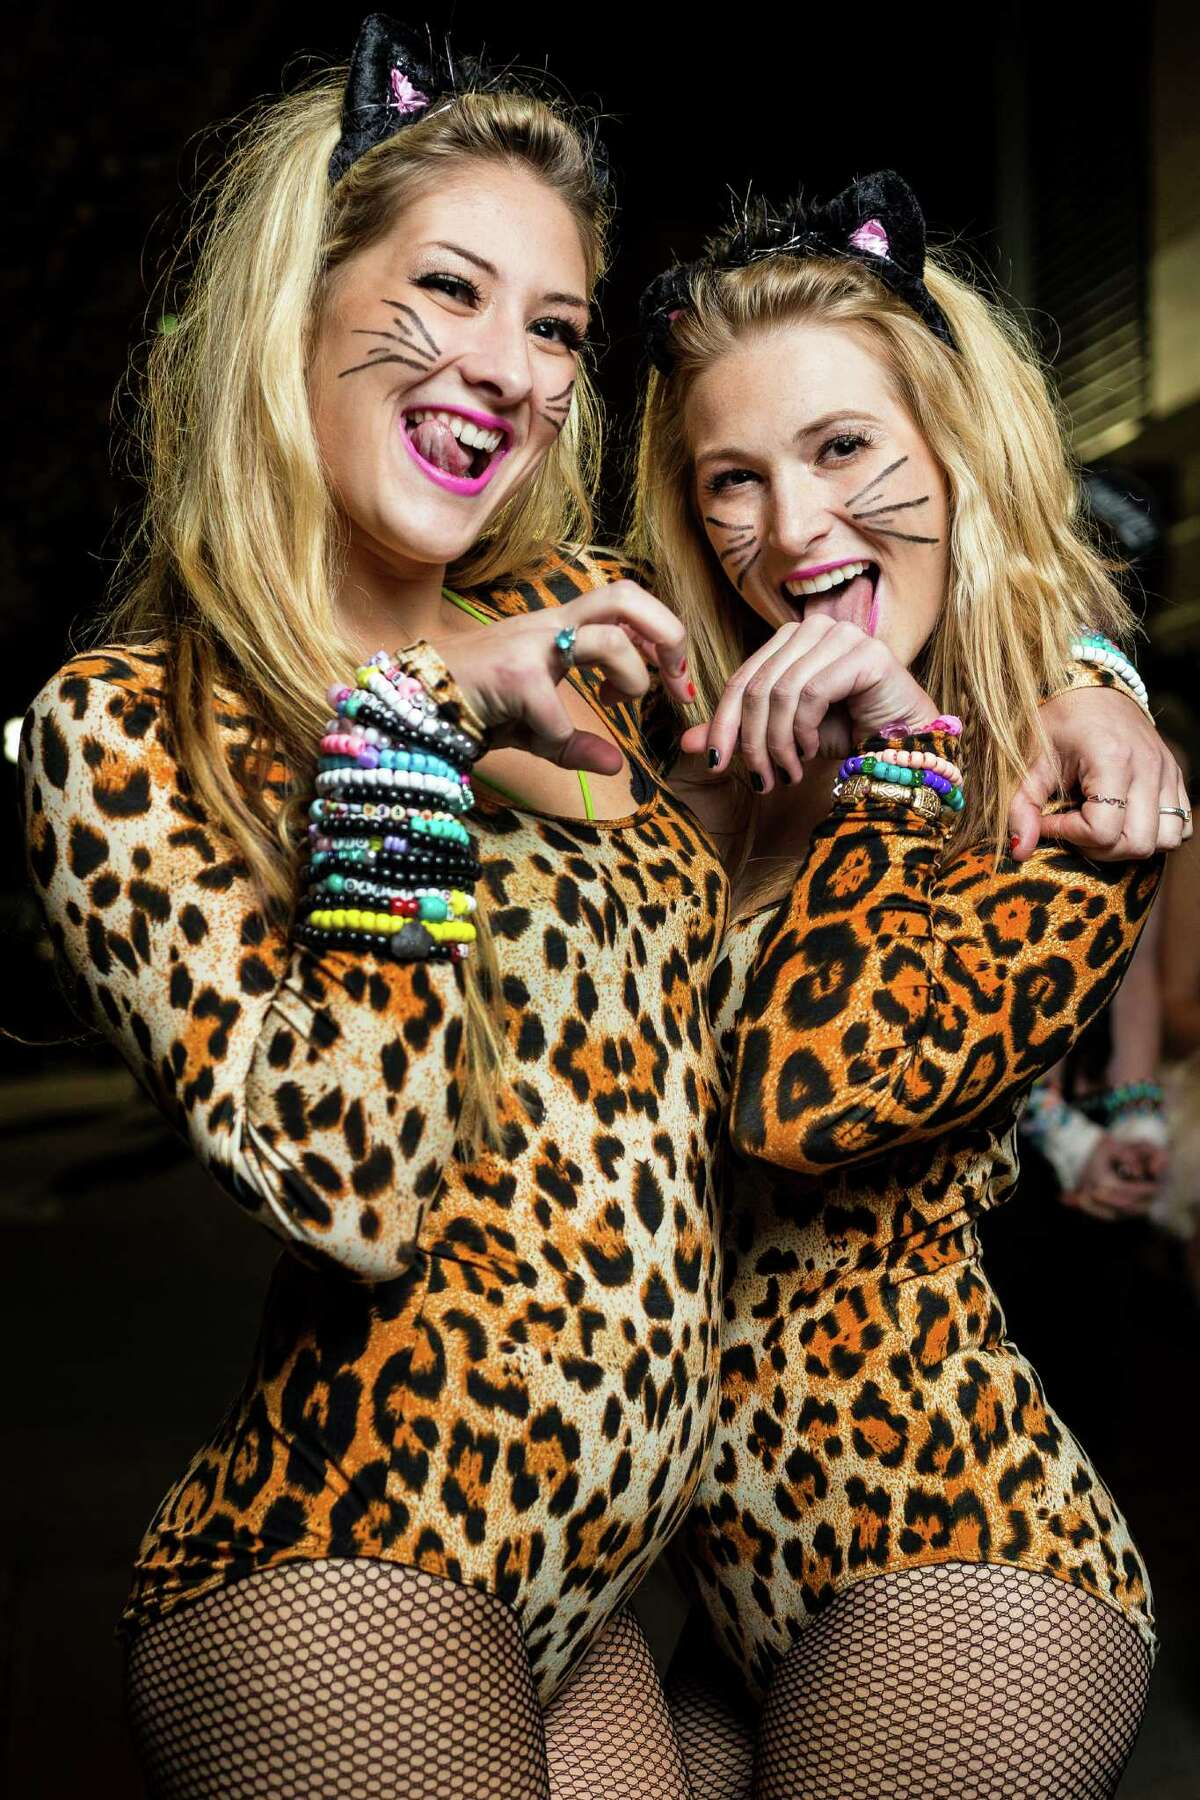 Costumes ranged from sinister to cute on FreakNight attendees Friday, Oct. 25, 2013, outside of WaMu Theater in Seattle.